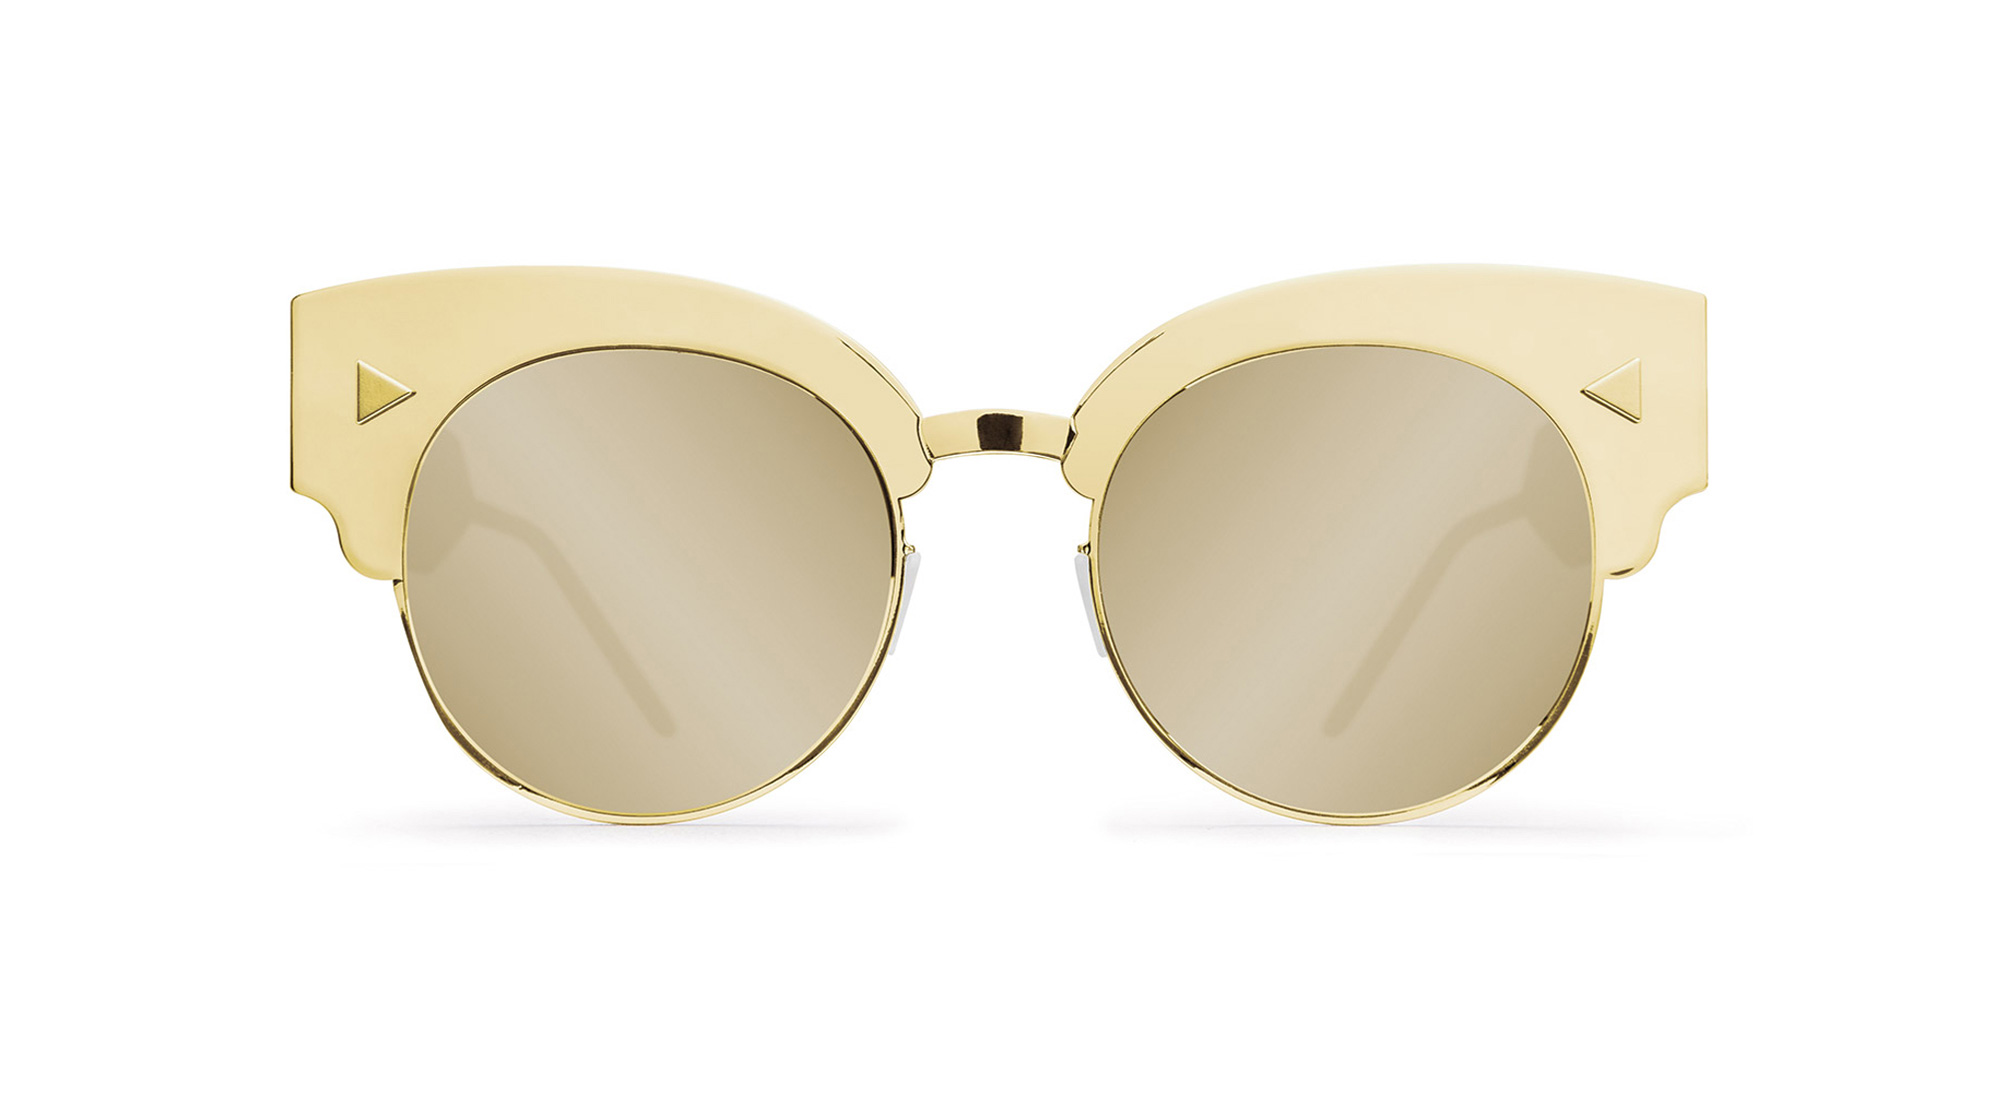 MILKYWAY_Eyewear_SOYA_Gold_FrontalView